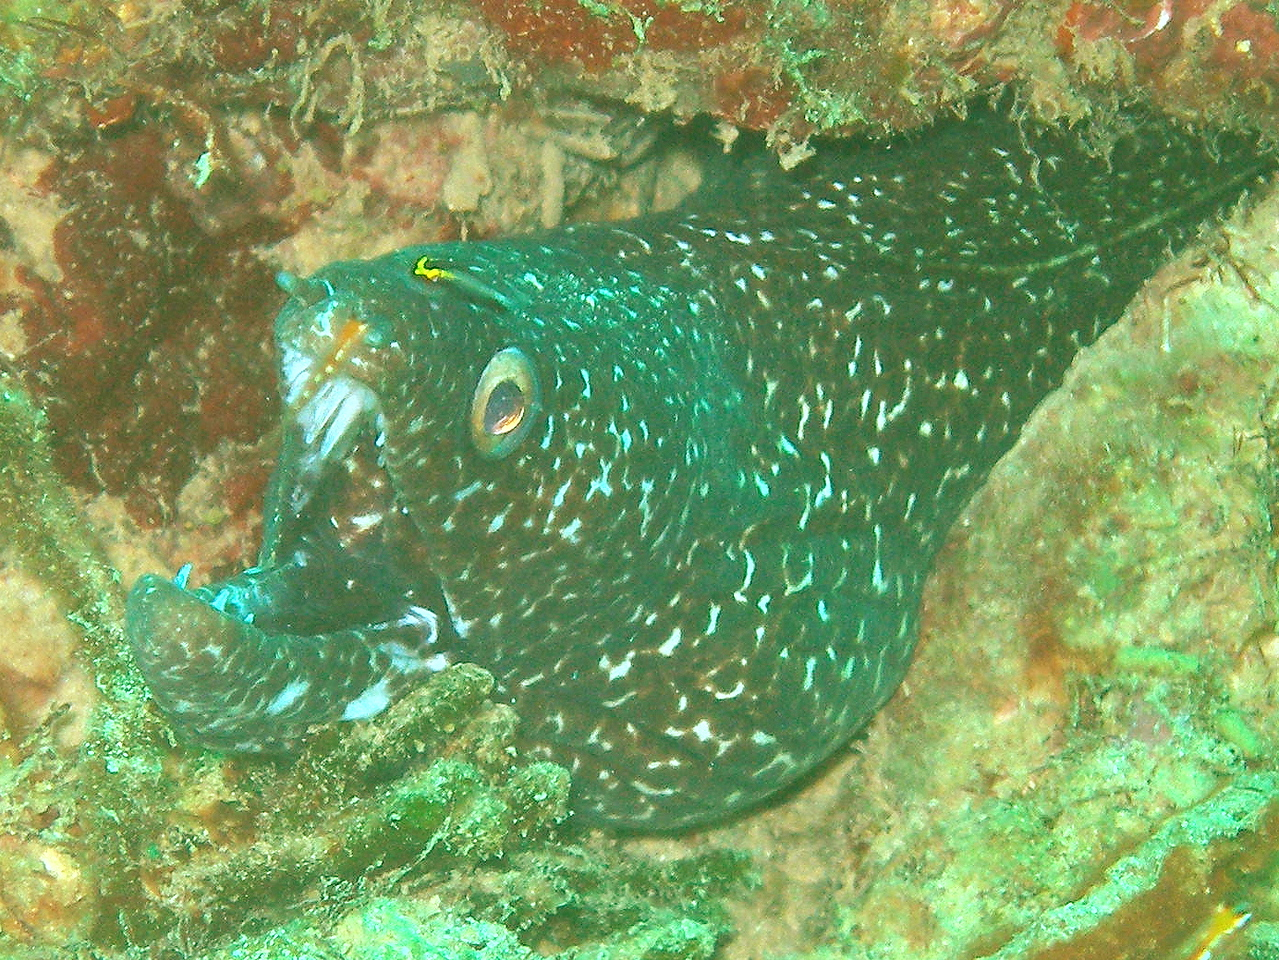 Spotted moray eel getting cleaned